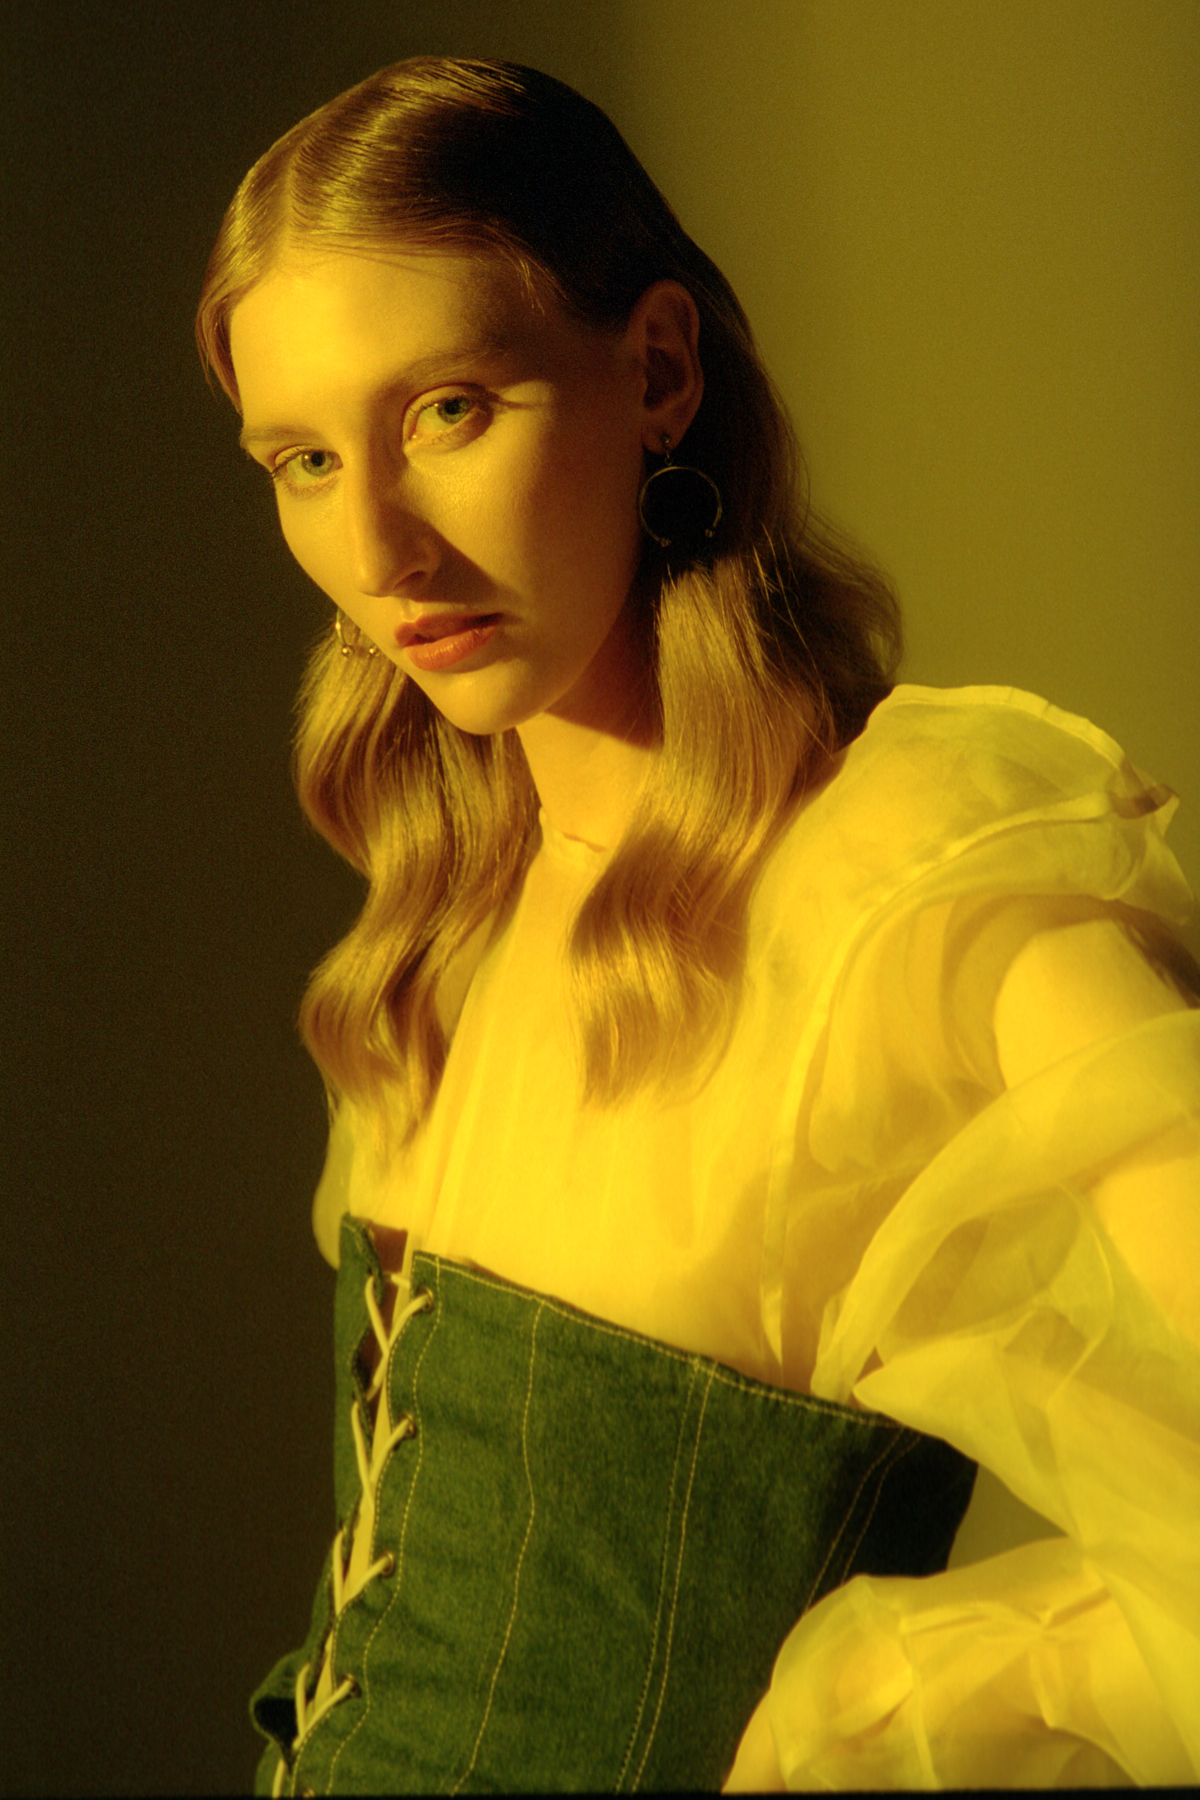 Teeth Magazine Online Thanh Nguyen Editorials Film Photography Yellow Lighting